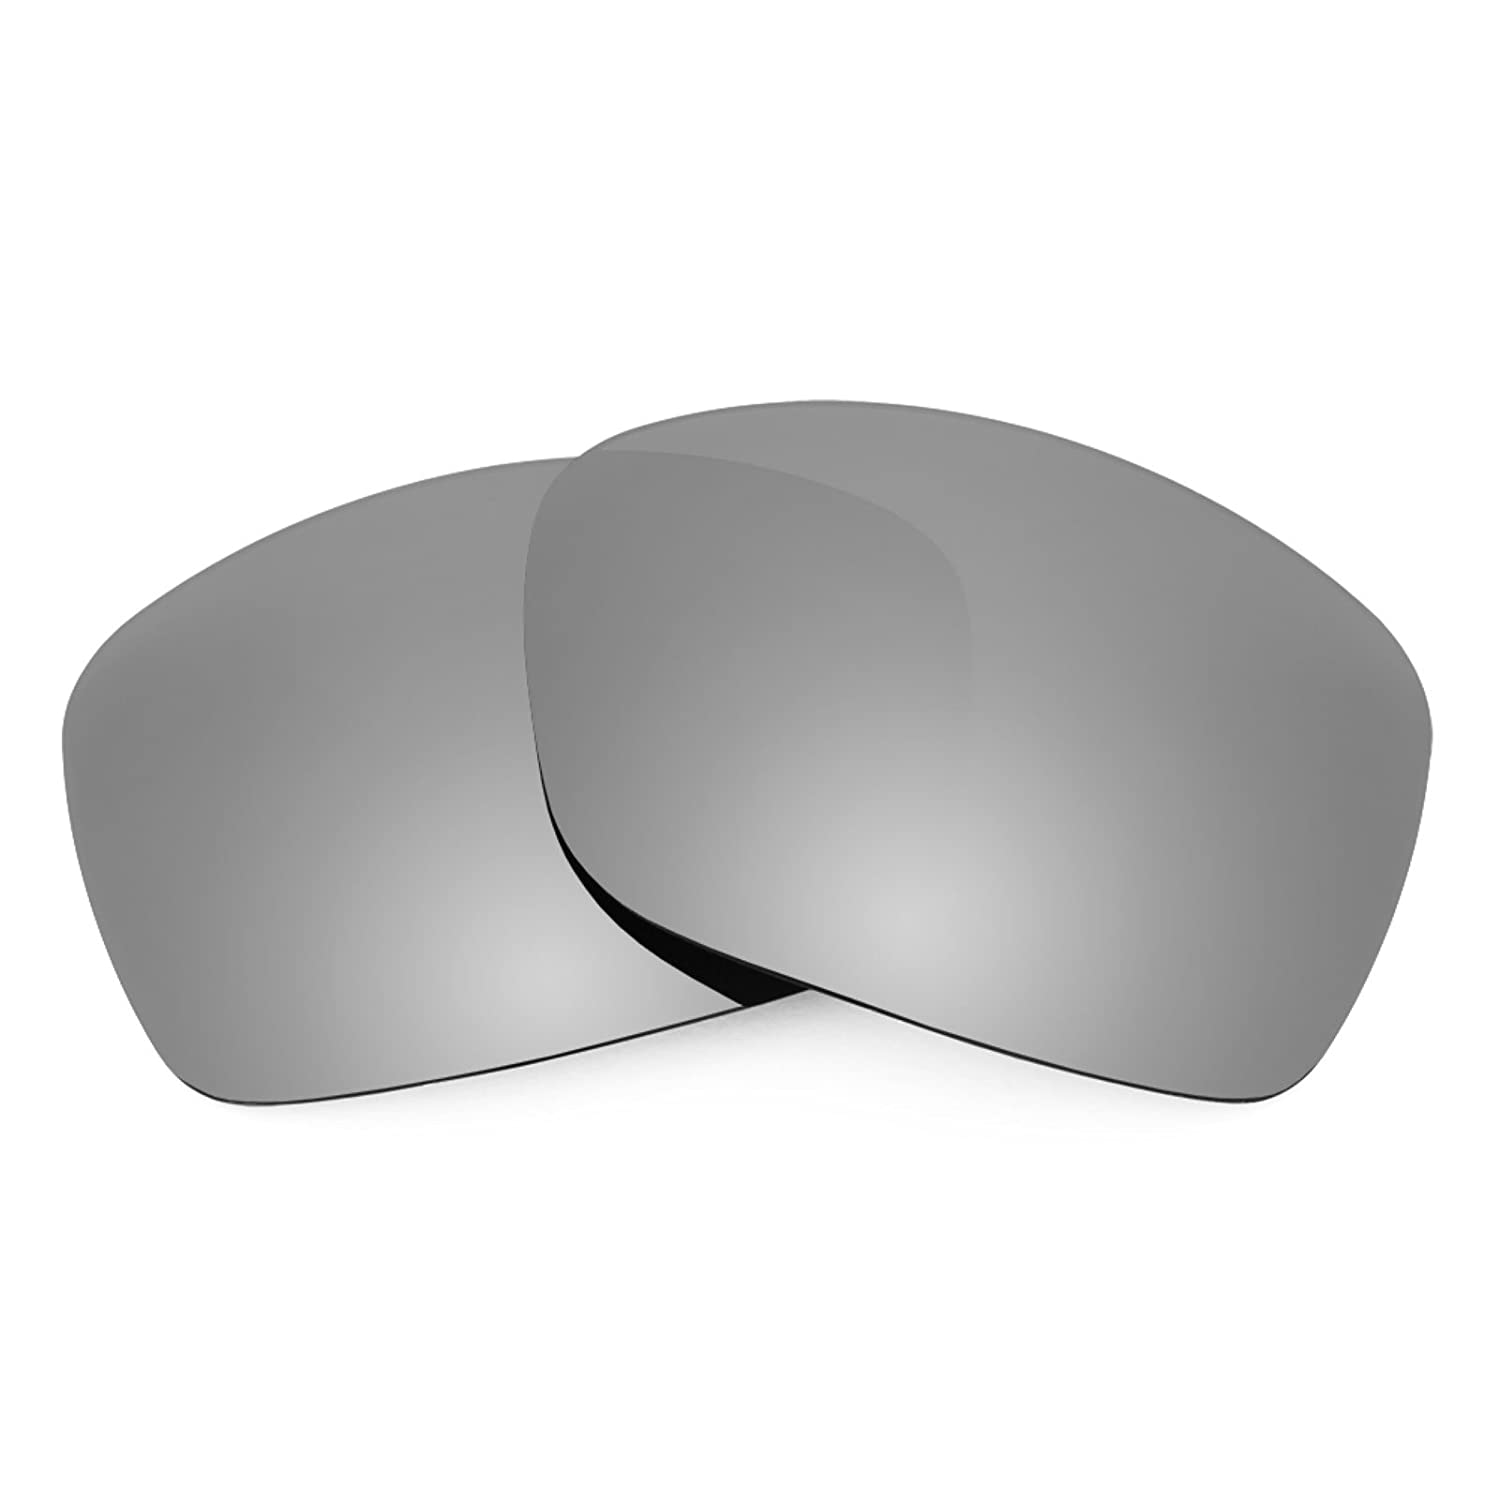 c9302335ee Revant Polarized Replacement Lenses for Oakley Ravishing Elite Titanium  MirrorShield®  Amazon.ca  Sports   Outdoors